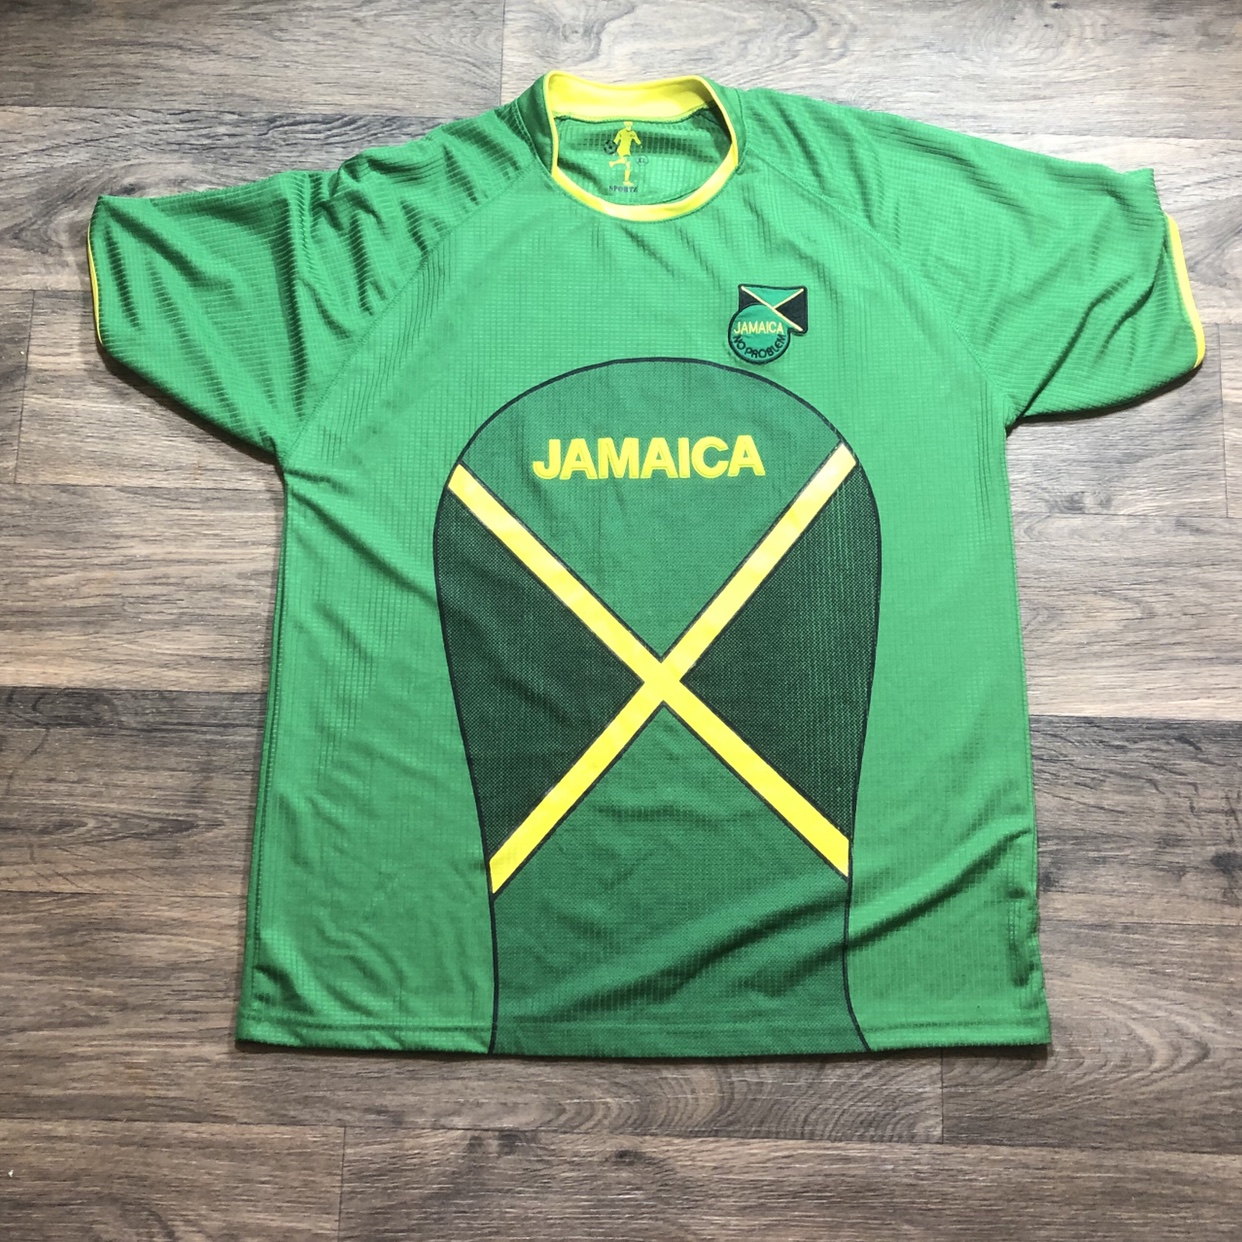 finest selection aea2d 40bdf Jamaica soccer jersey. Clean and ready for the World... - Depop